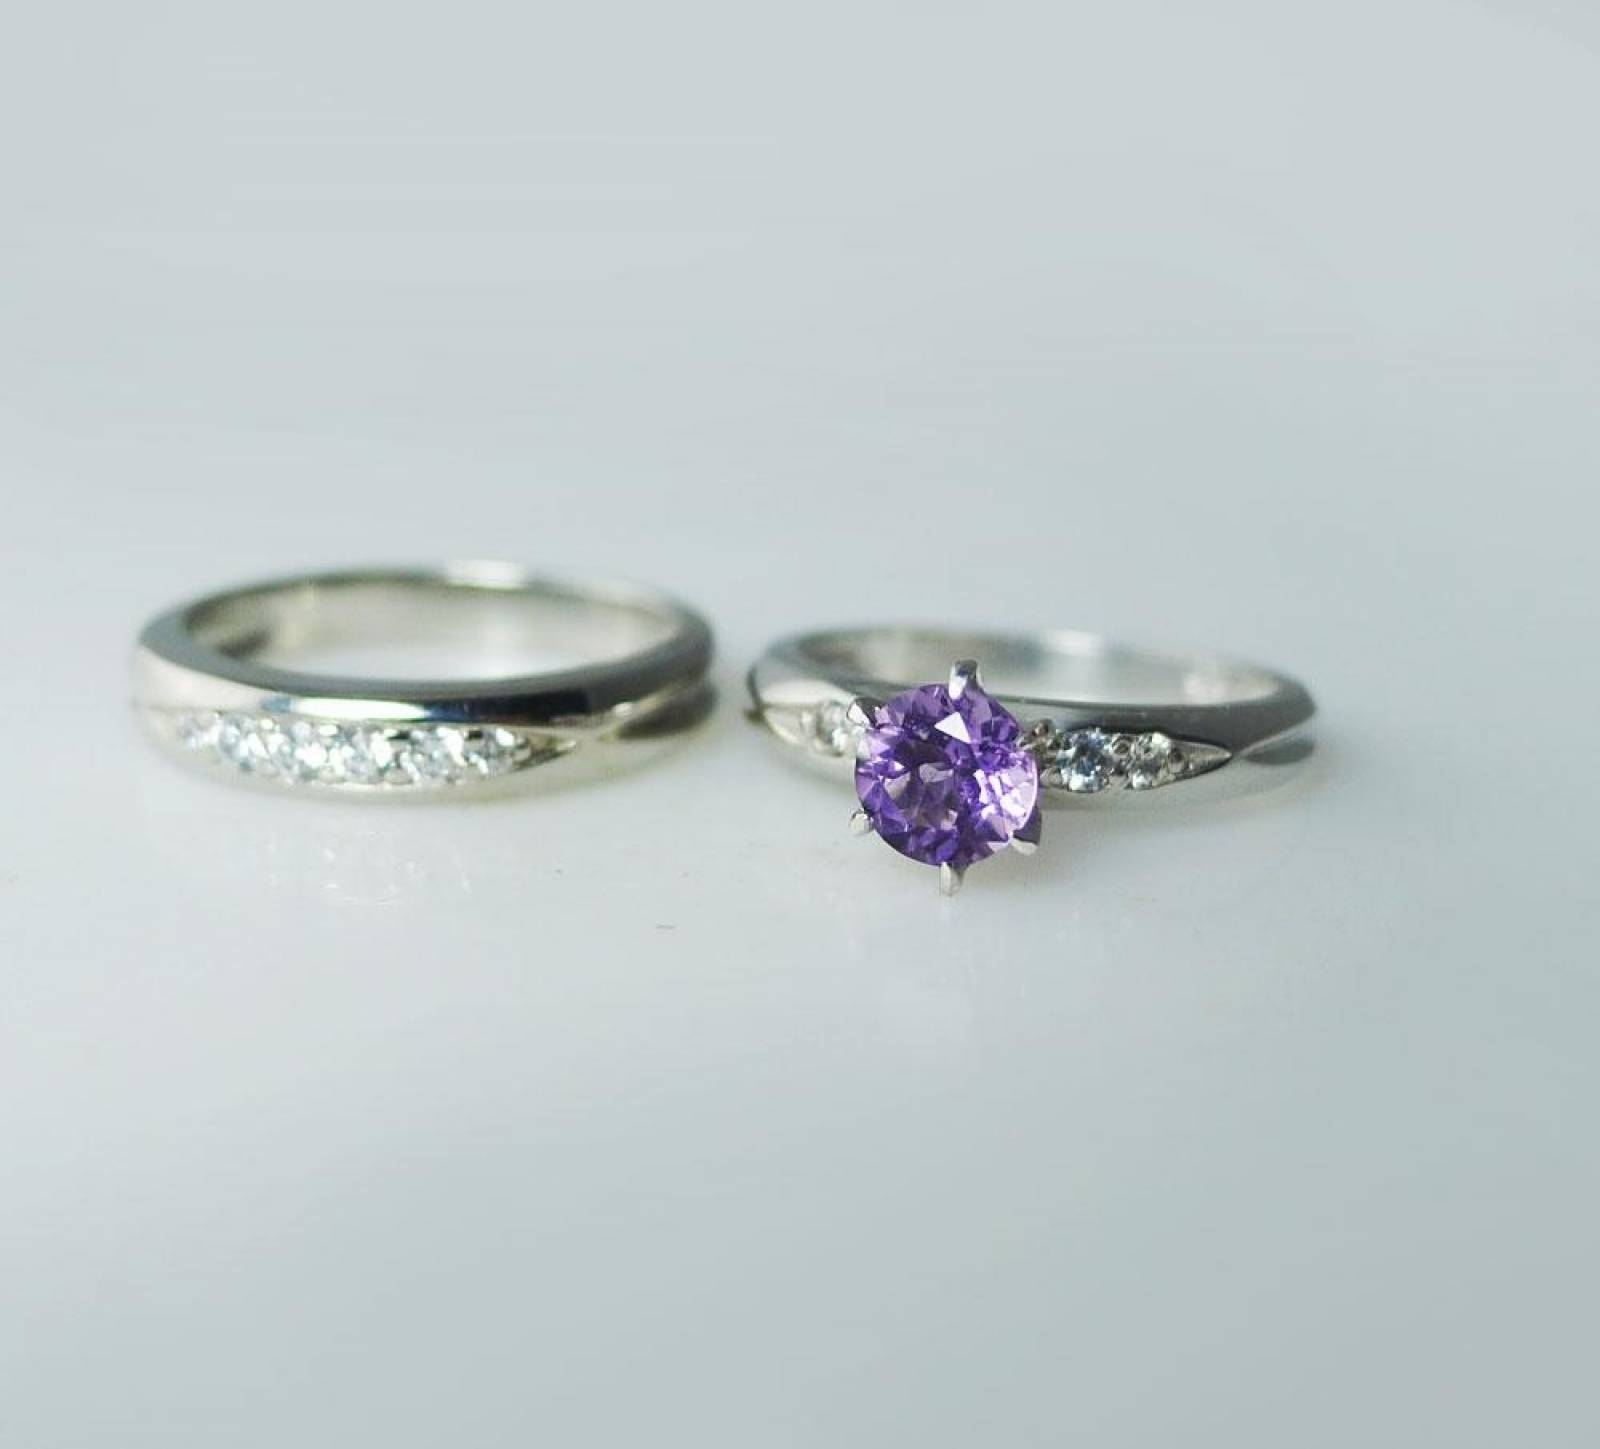 wonderful purple wedding rings photos concept wedding ideas with purple wedding bands gallery 10 - Purple Wedding Rings